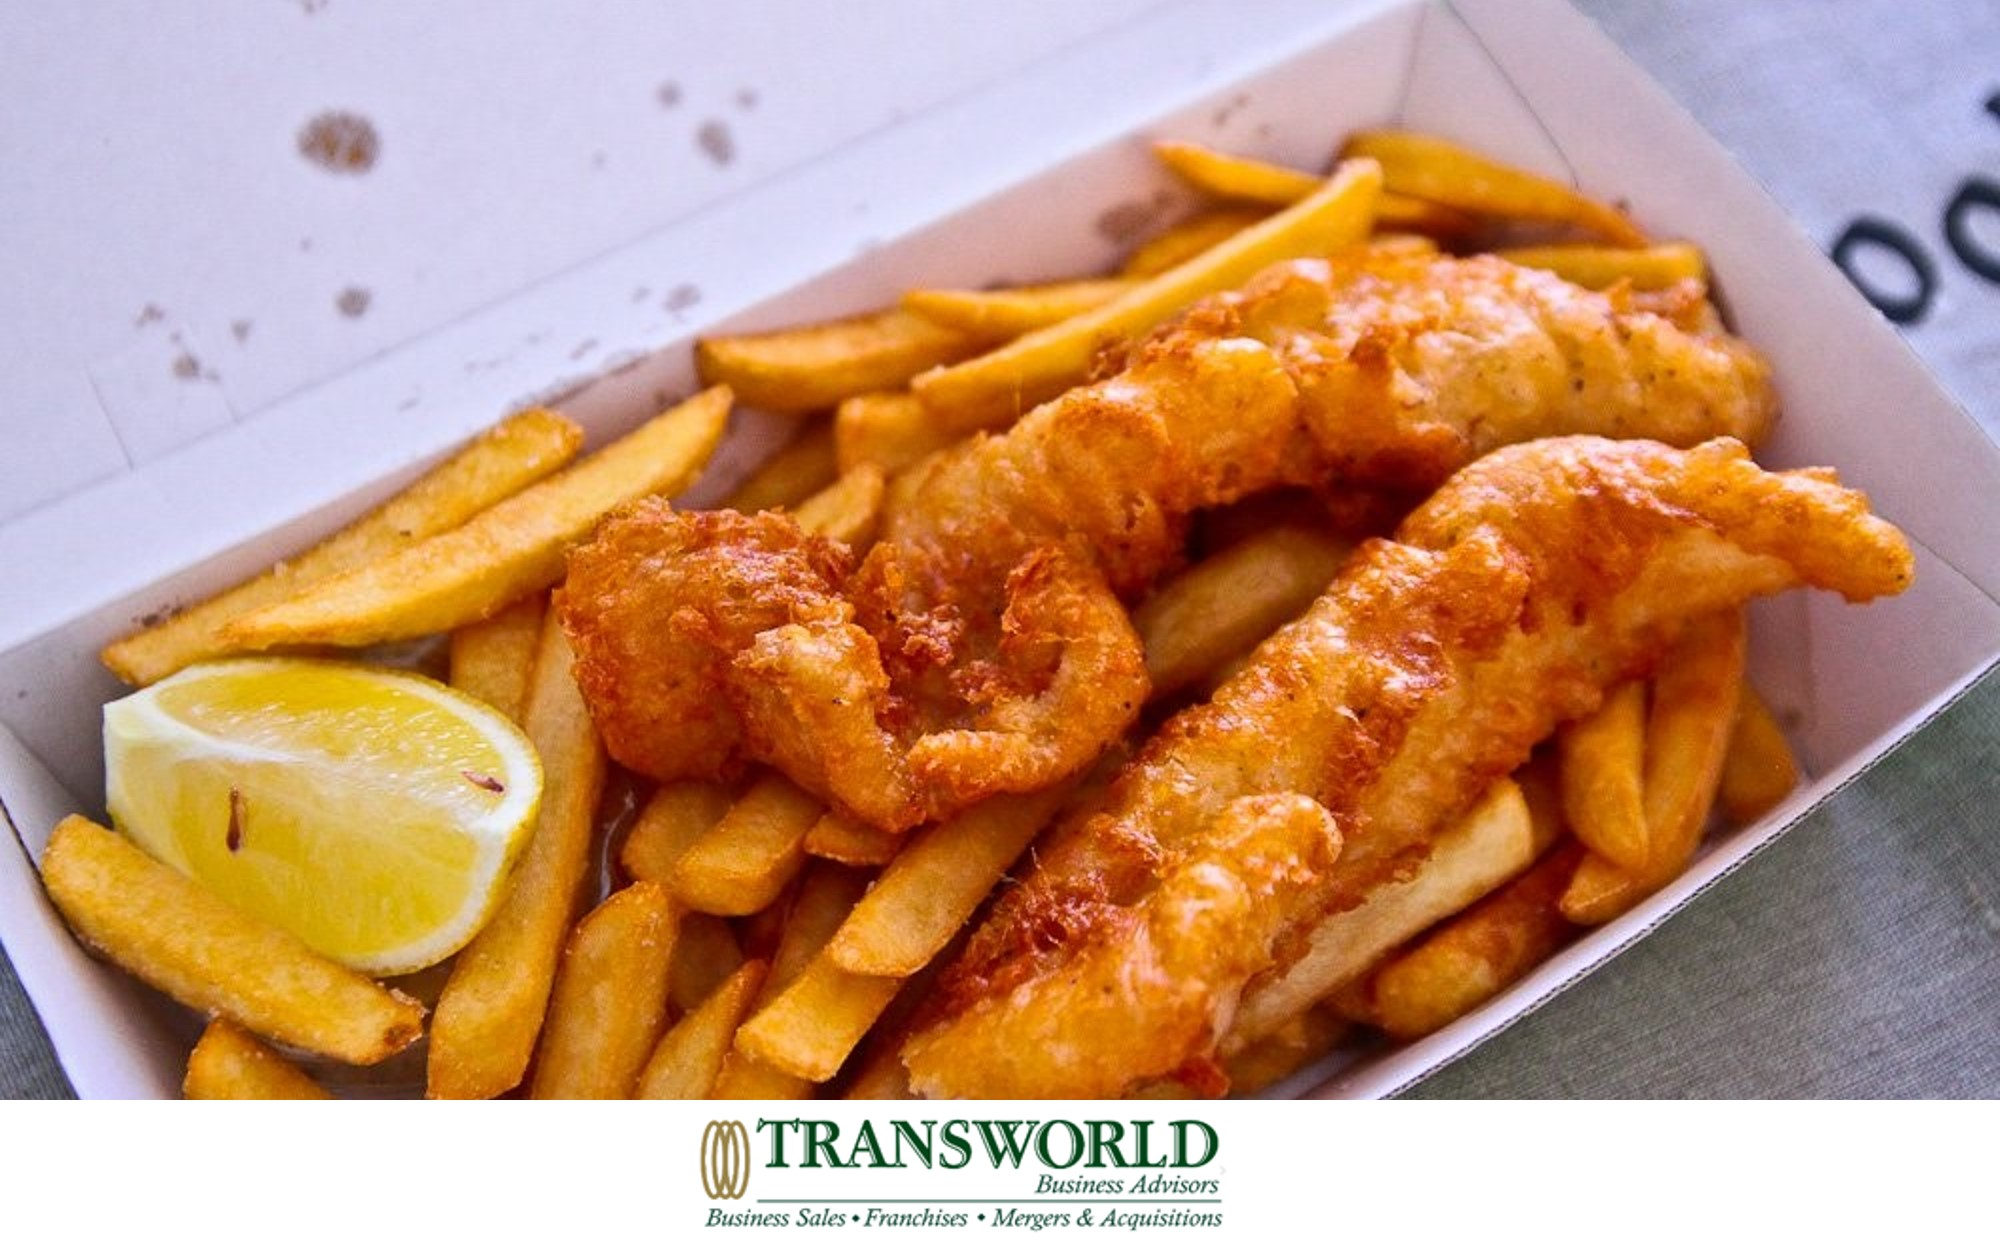 Takeaway Fish & Chips - Great Location Easily Run